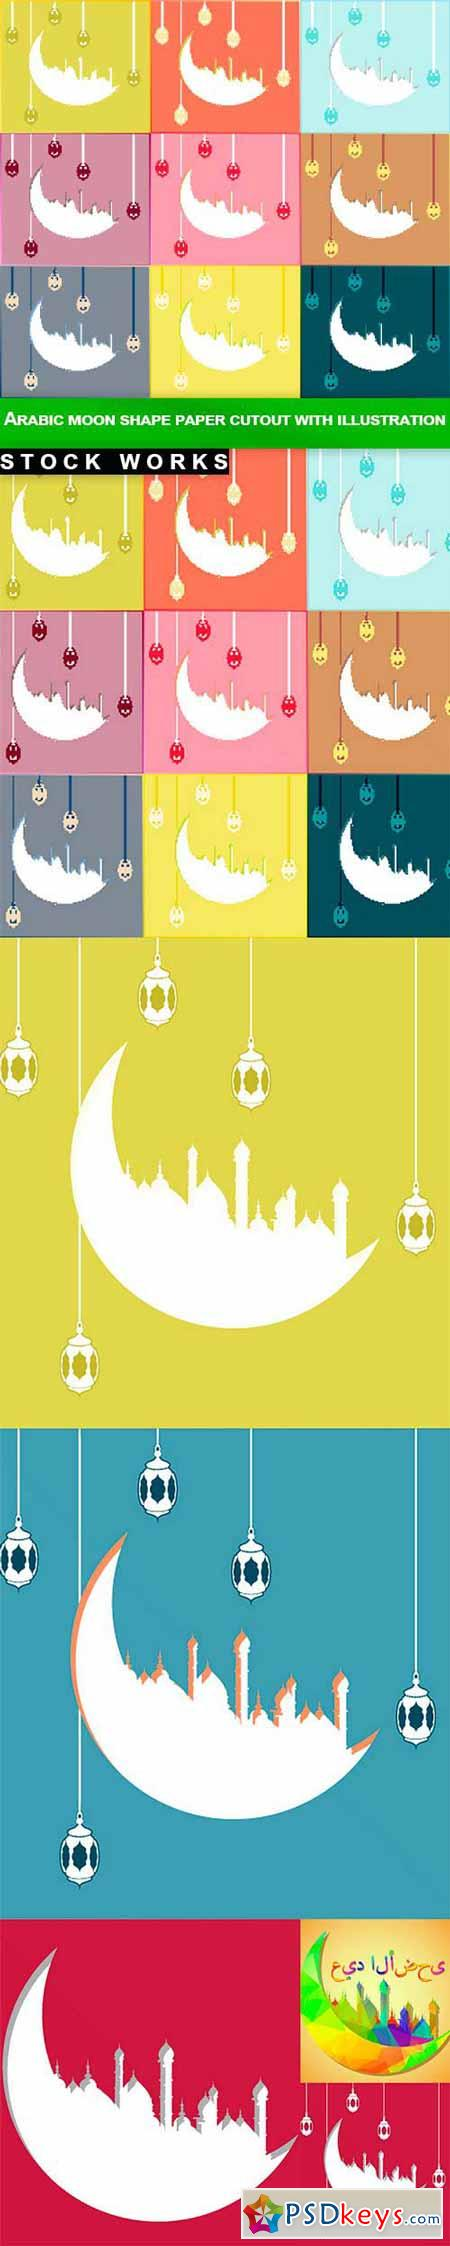 Arabic moon shape paper cutout with illustration - 6 EPS